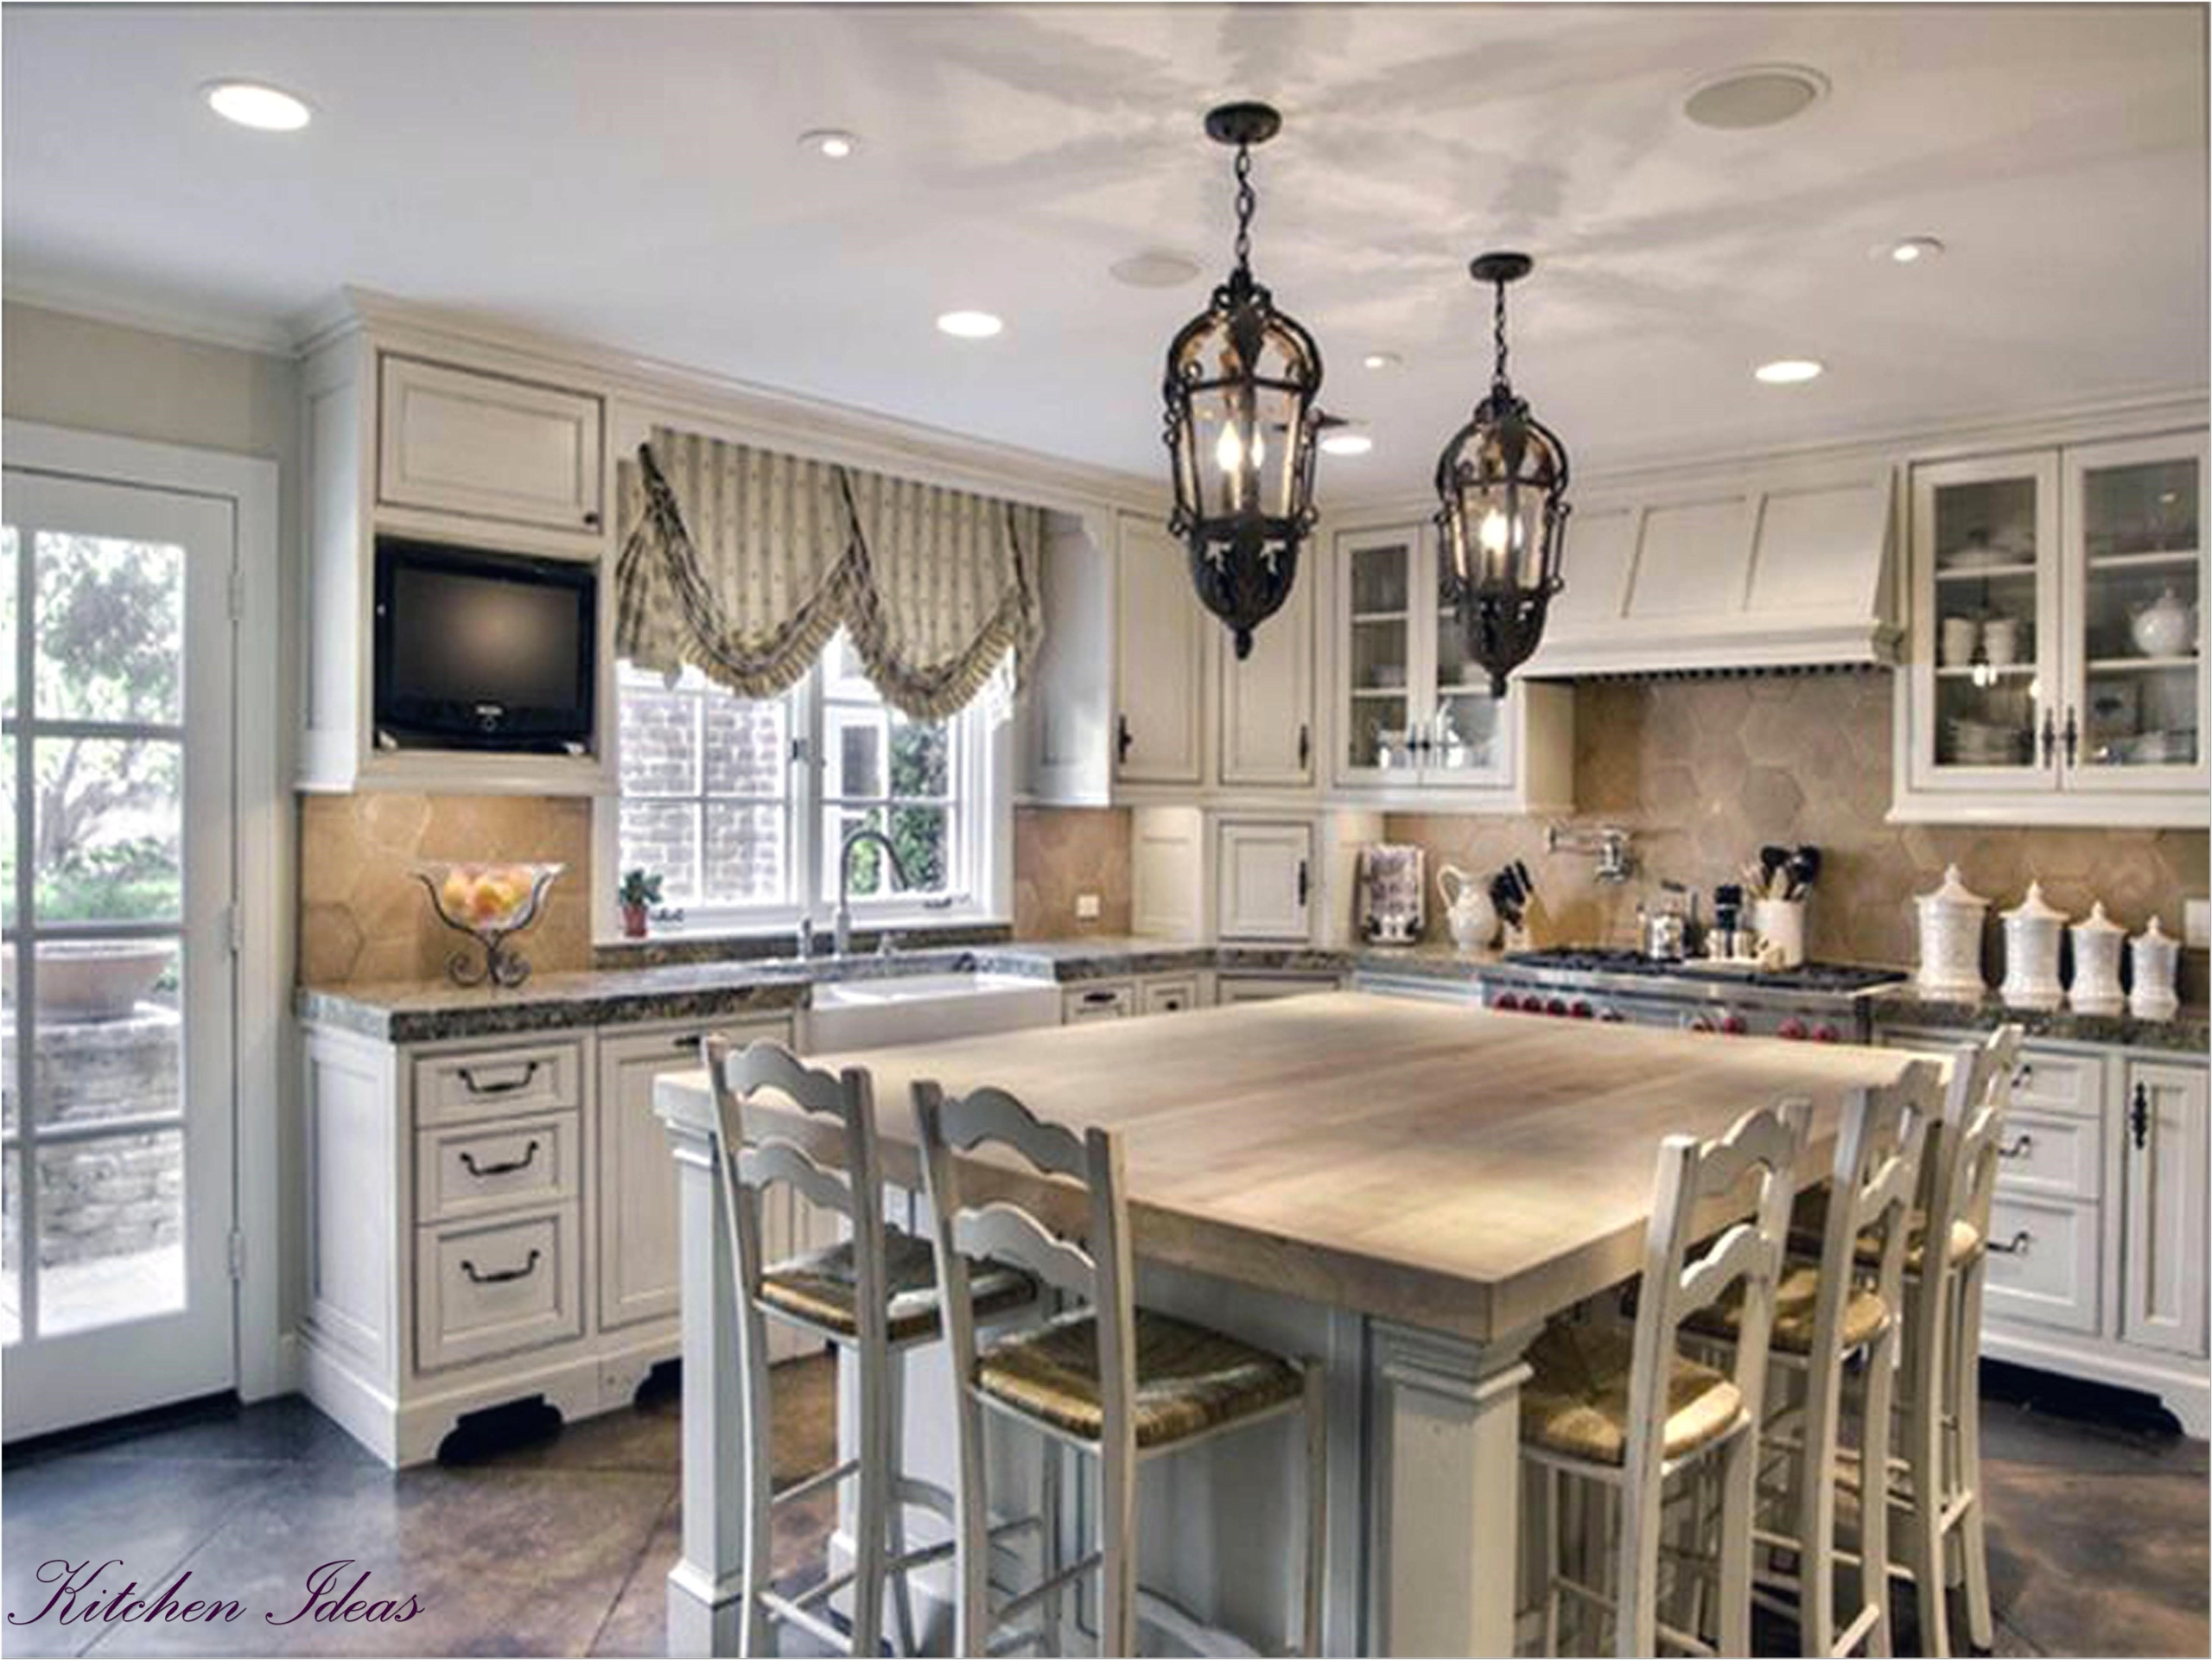 french country kitchens fabric for kitchen chairs decor visual hunt serenity with table my